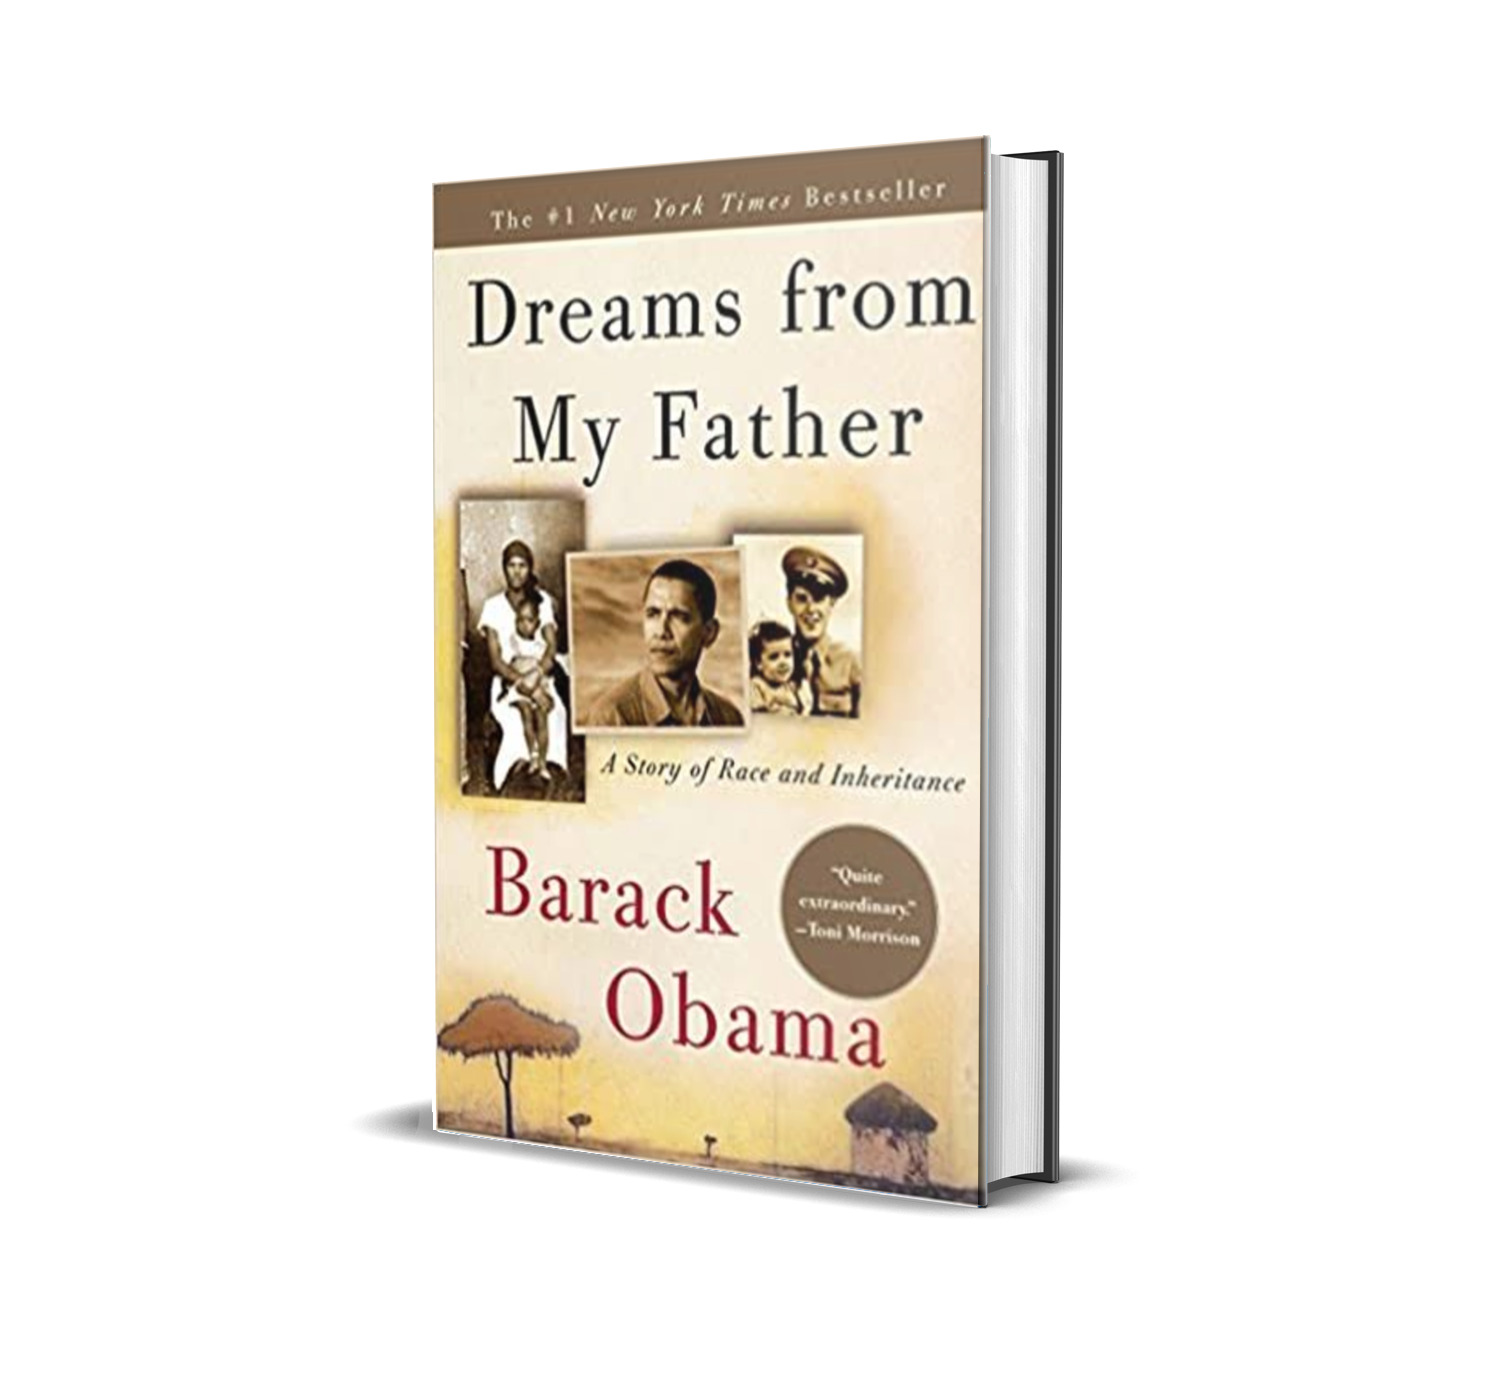 Dreams from my father- Barack Obama